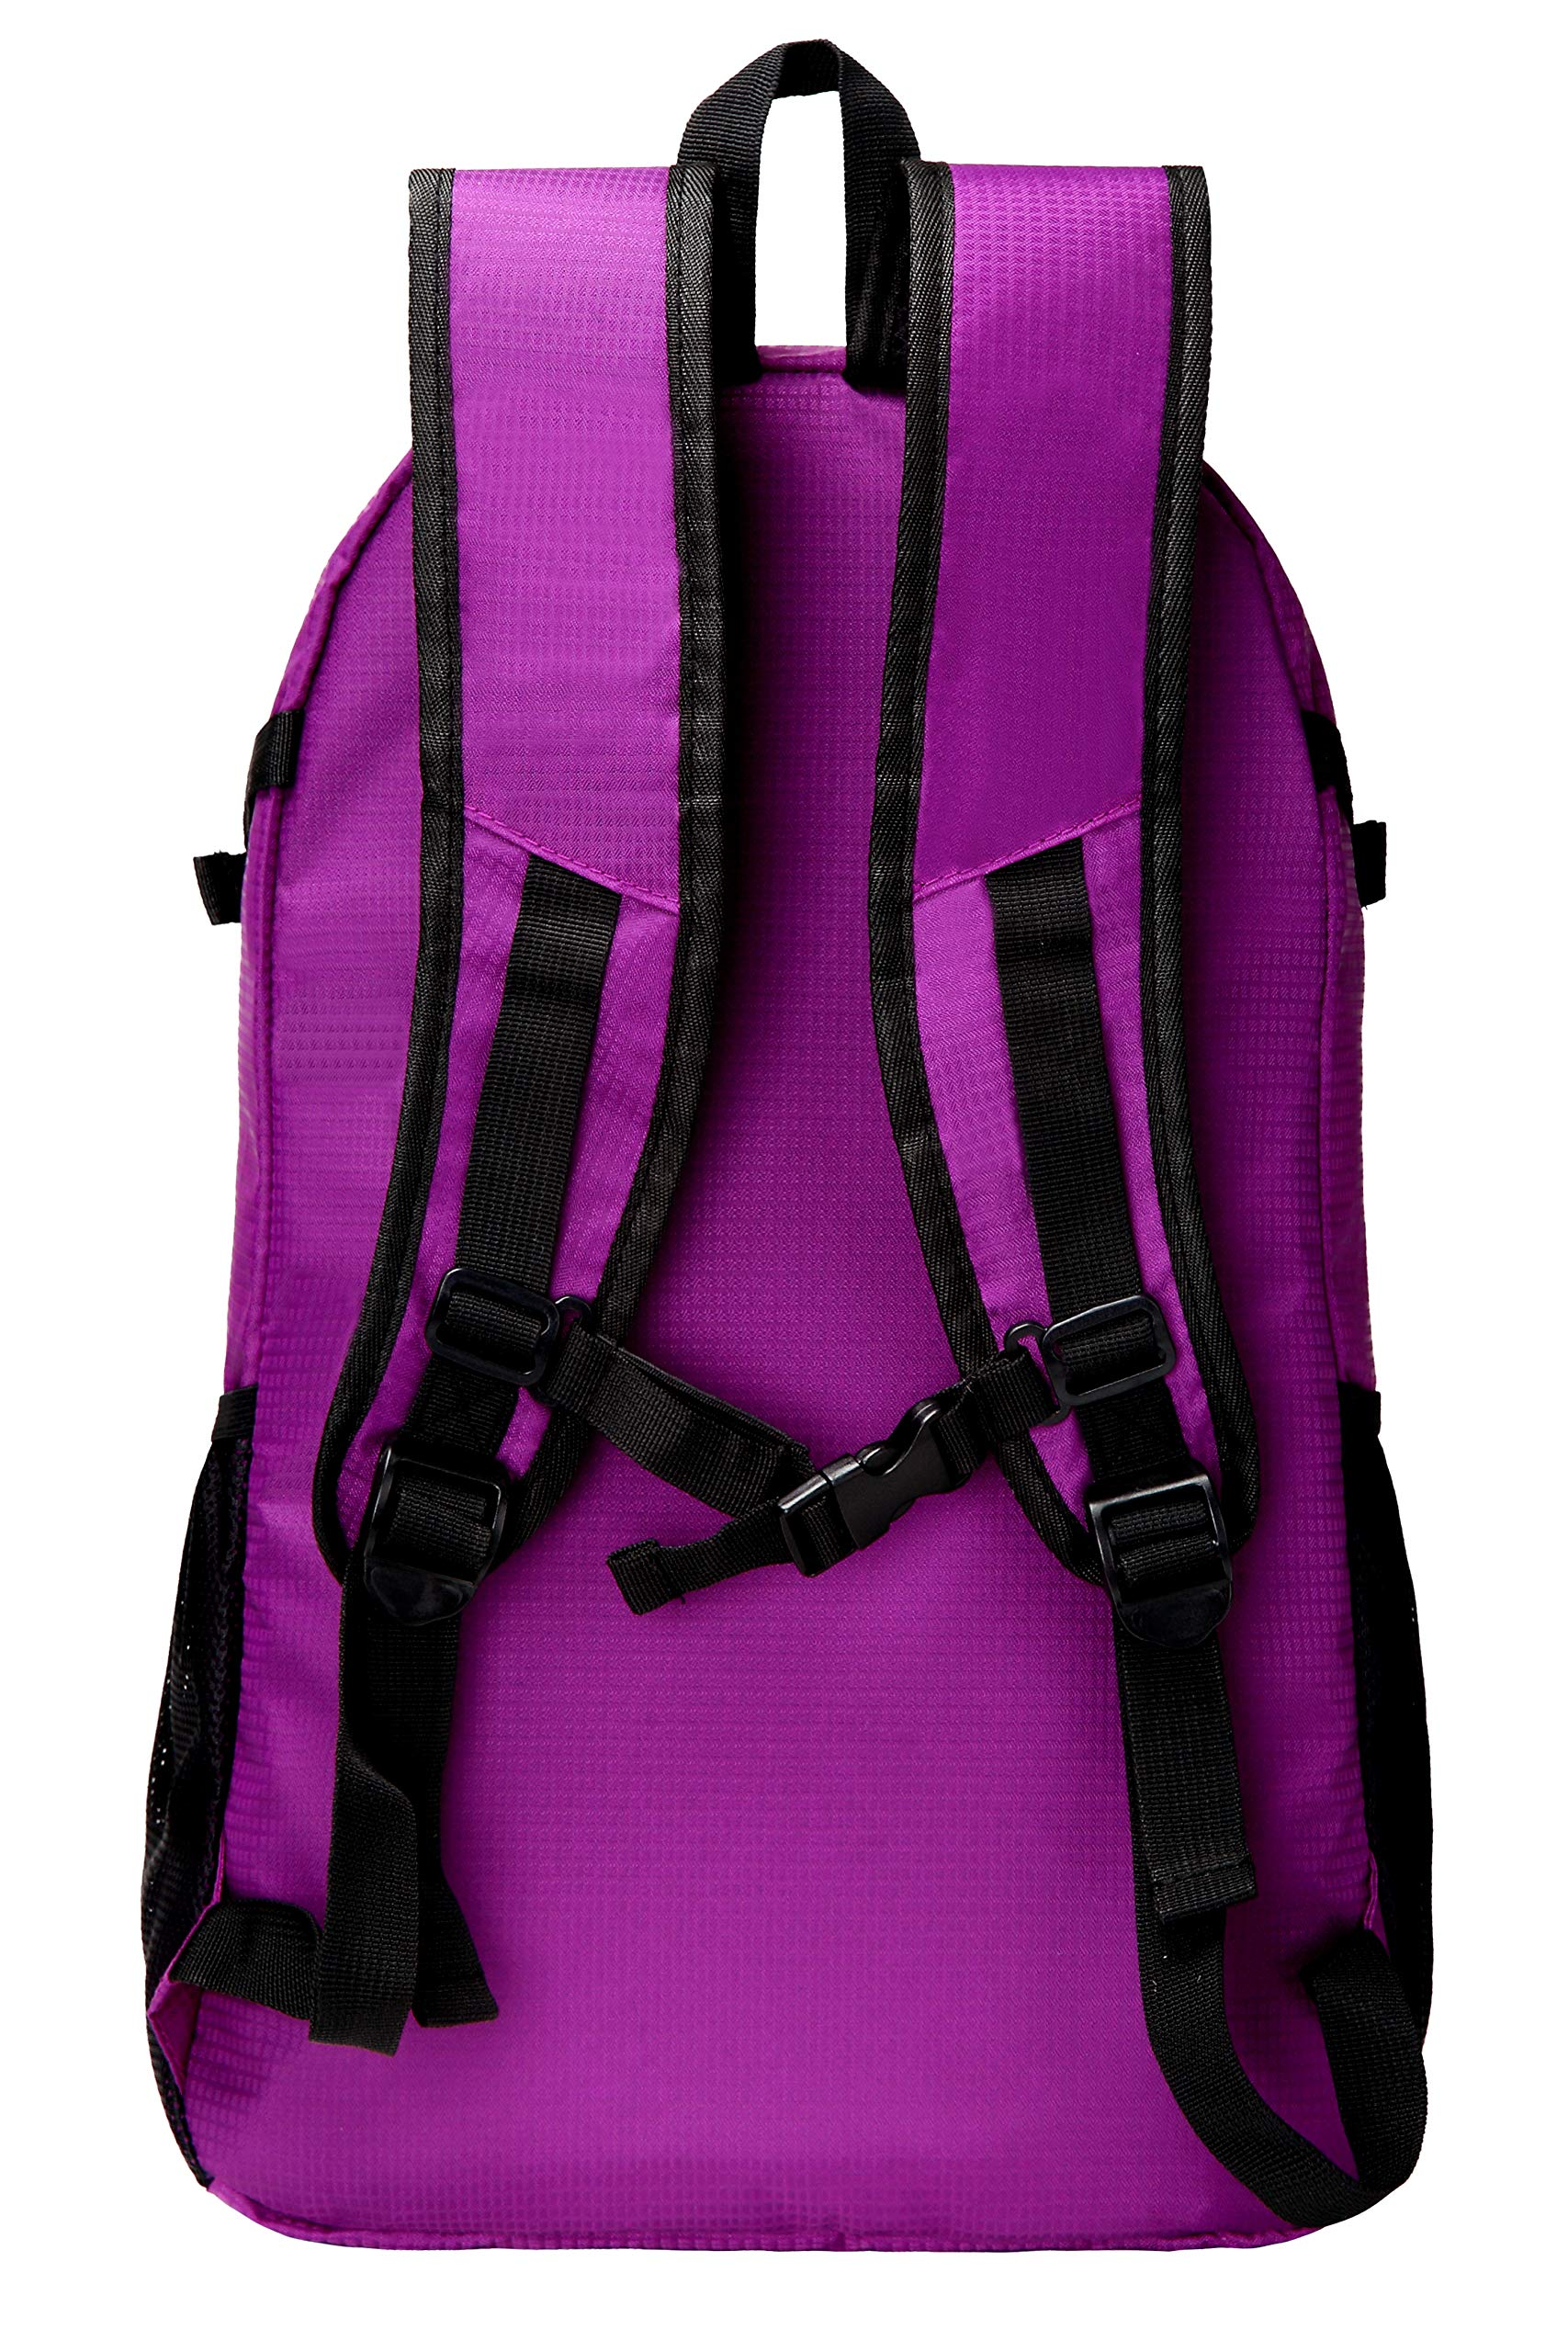 JINSOW 35L Lightweight Packable Hiking Backpack Daypack, Water Resistant Foldable Large Bags Travel Camping Outdoor Backpacks for Women Men Boys Girls Purple by JINSOW (Image #3)